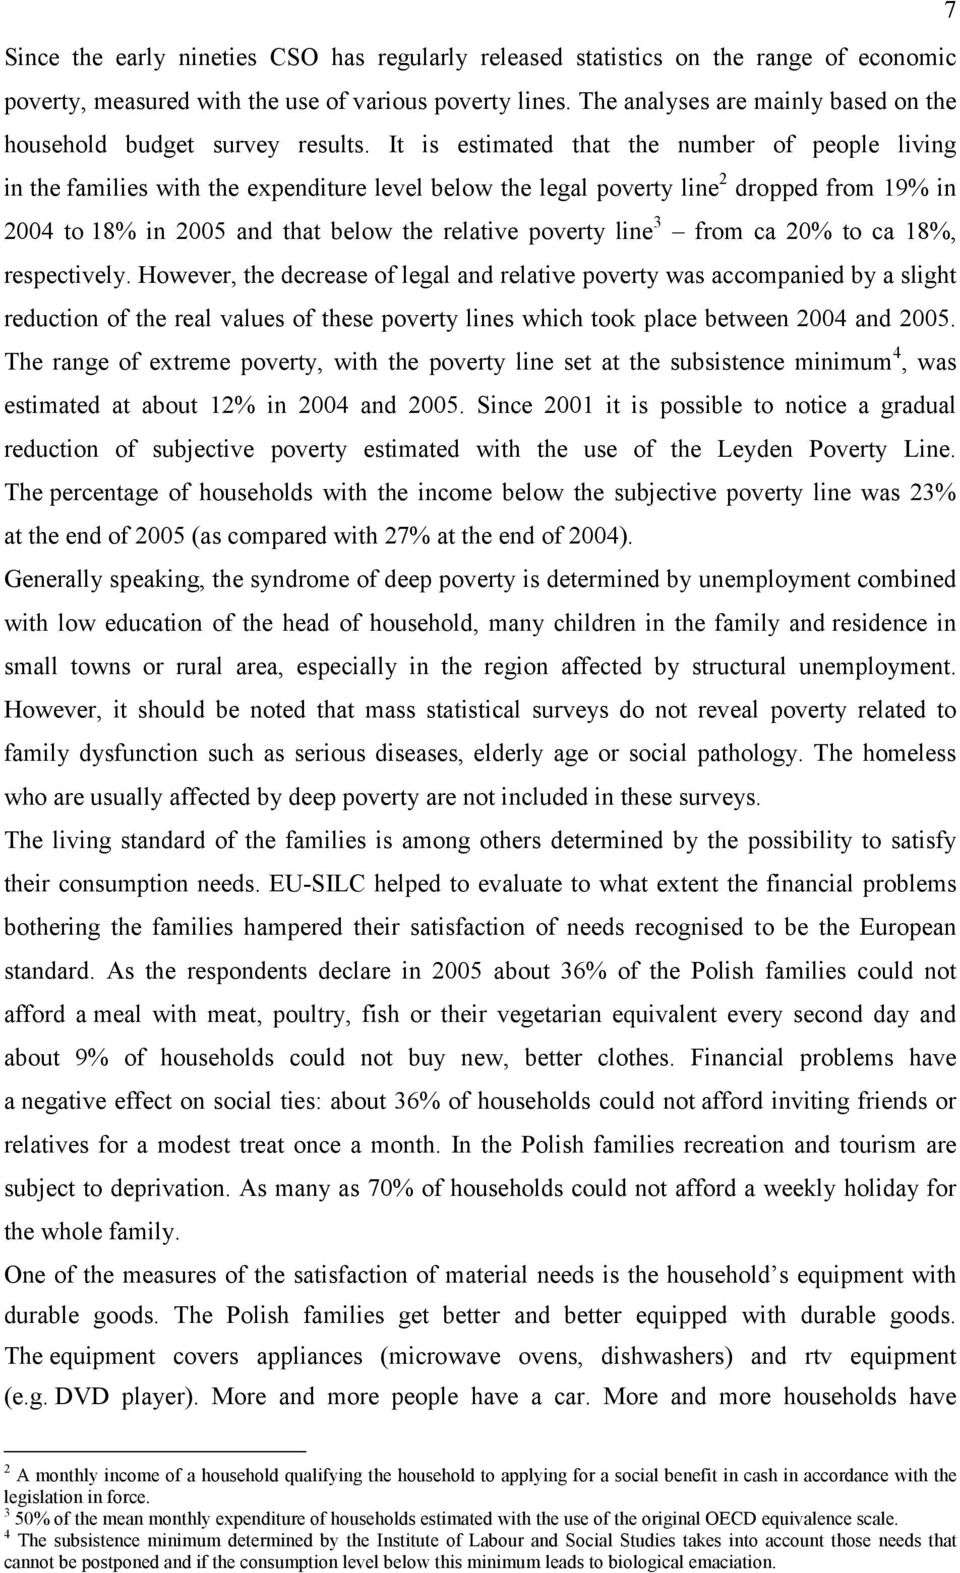 It is estimated that the number of people living in the families with the expenditure level below the legal poverty line 2 dropped from 19% in 2004 to 18% in 2005 and that below the relative poverty